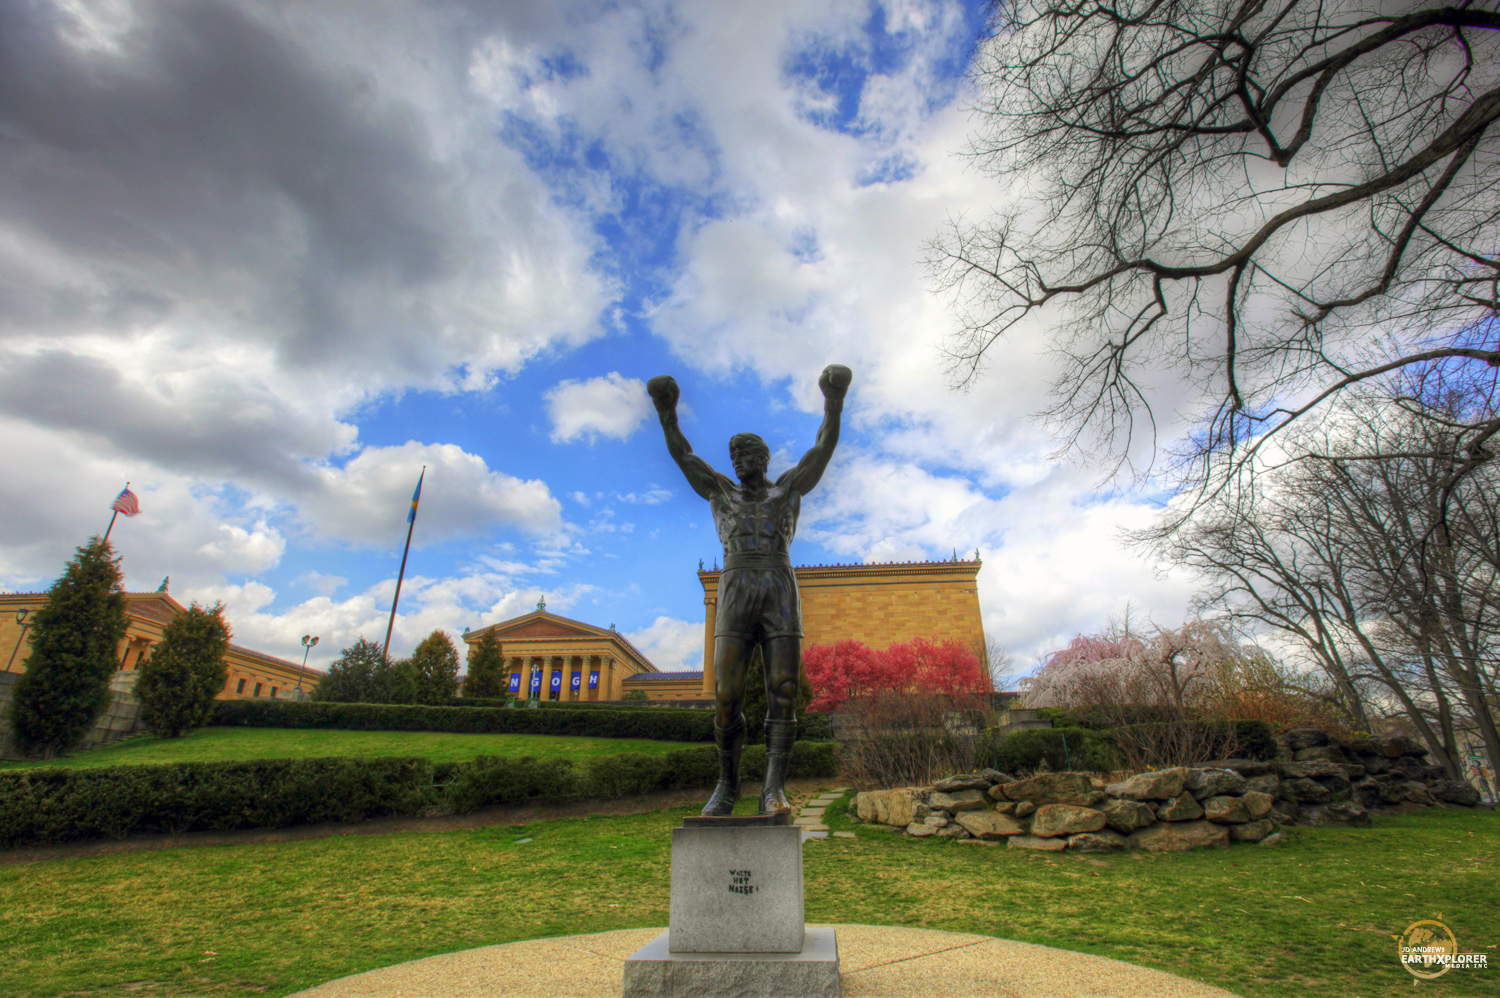 The 2-ton, 10-foot-tall bronze statue of Rocky was created by A. Thomas Schomberg and is located at the bottom of the stairs at the Philadelphia Museum of Art.